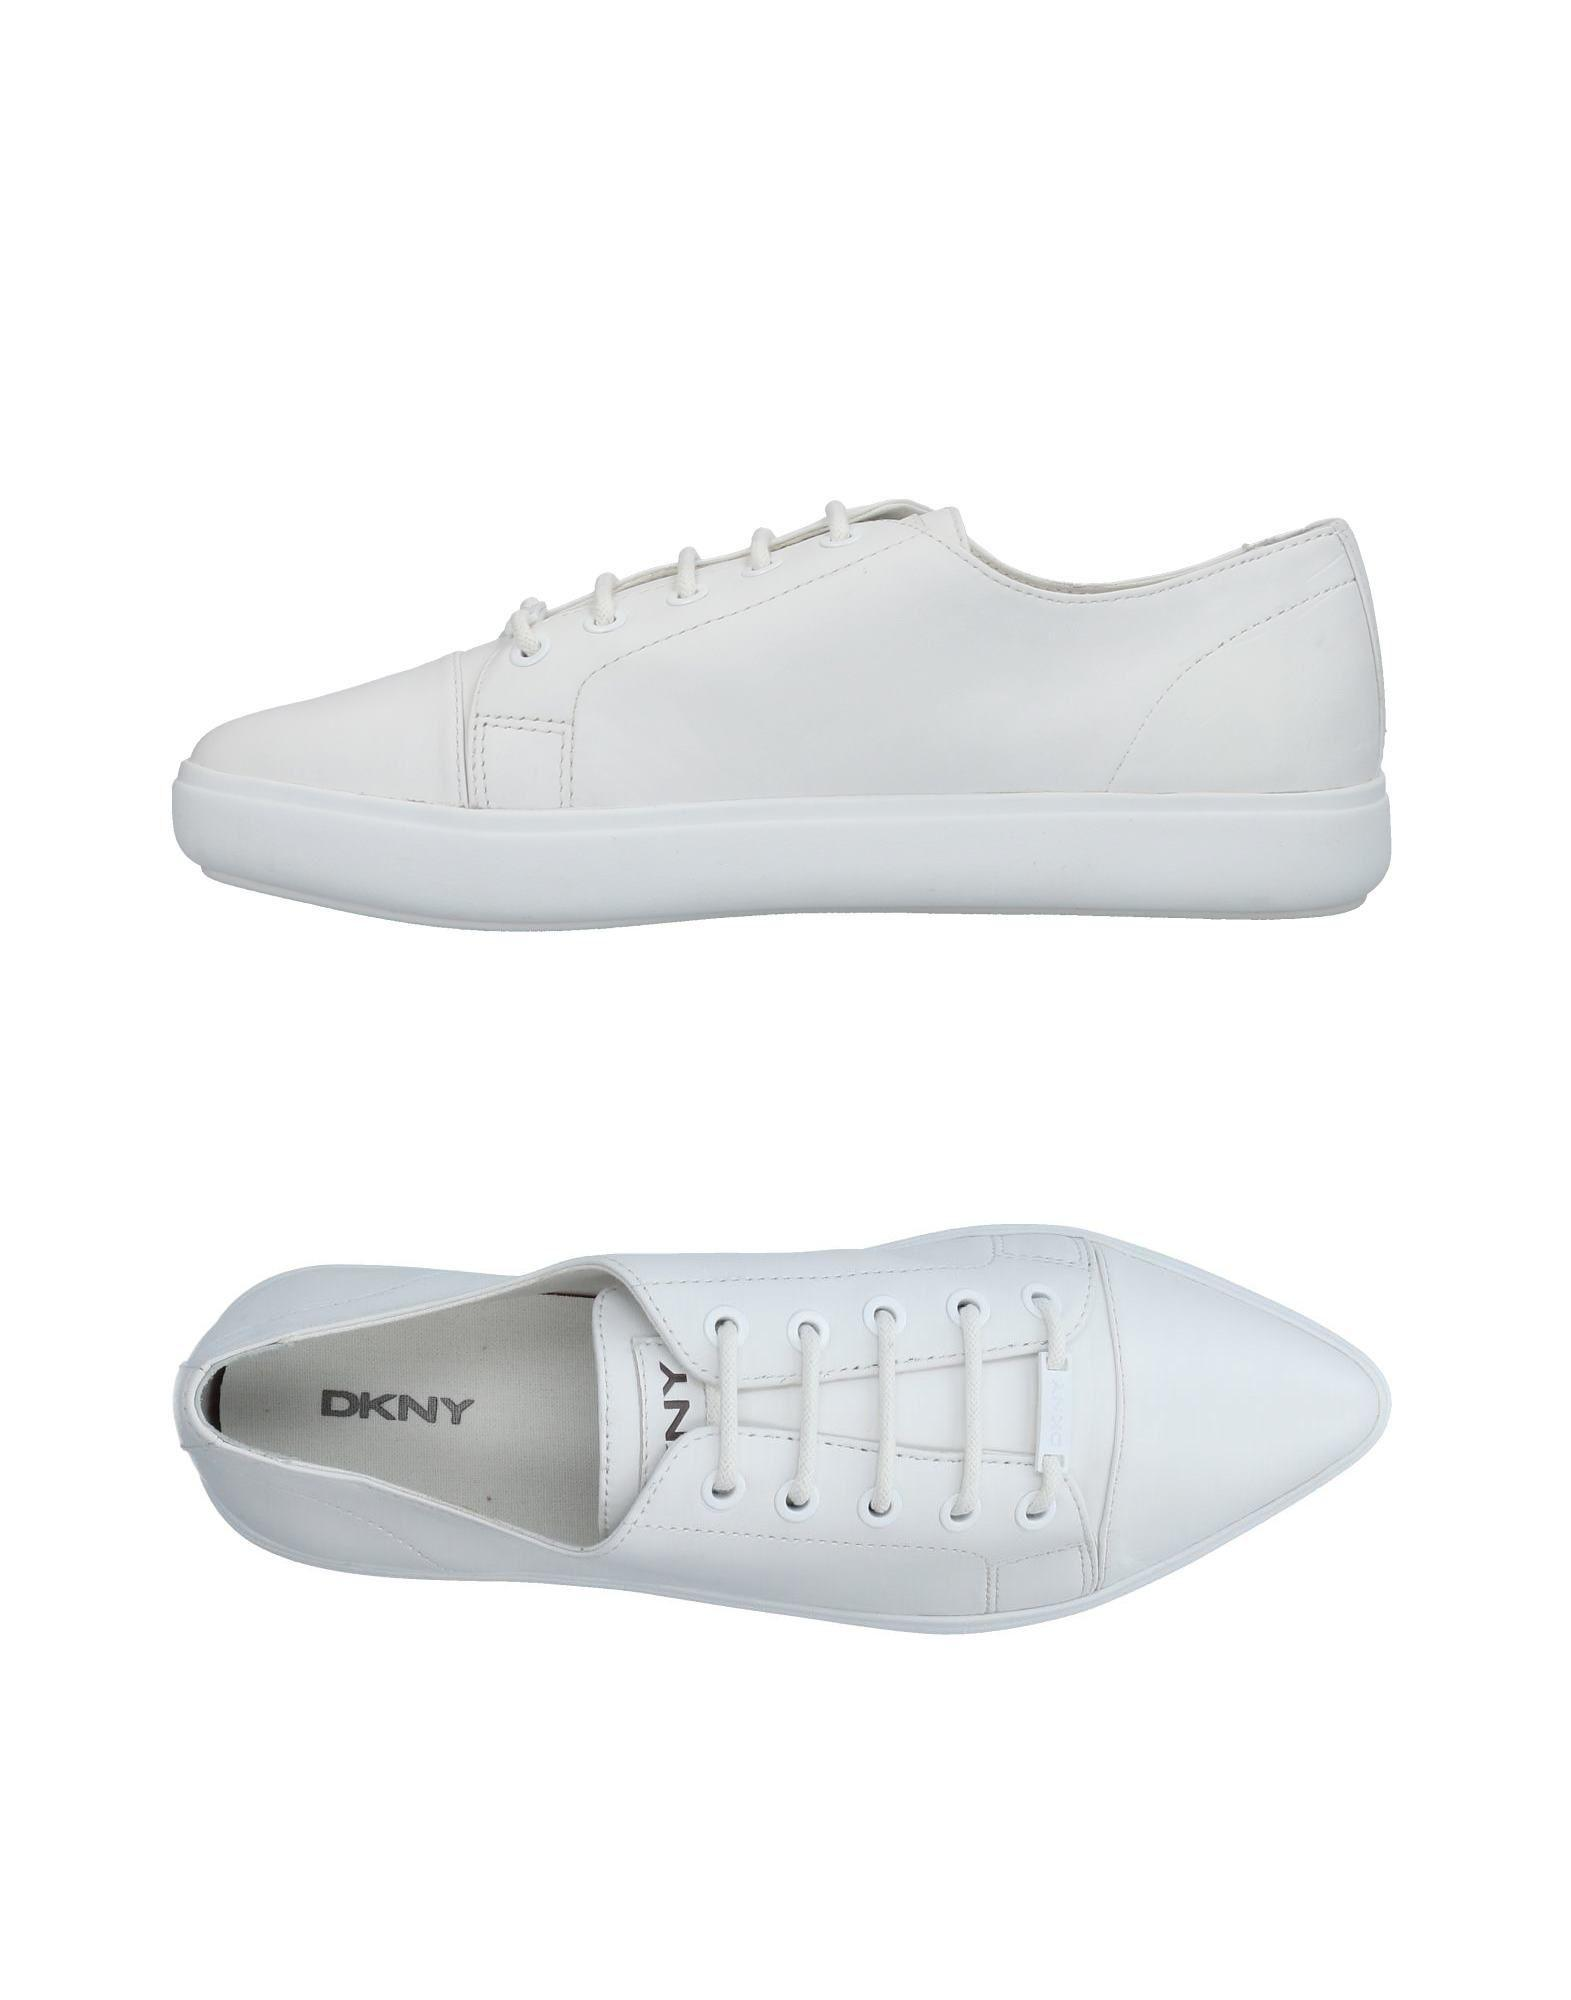 Dkny Sneakers In White